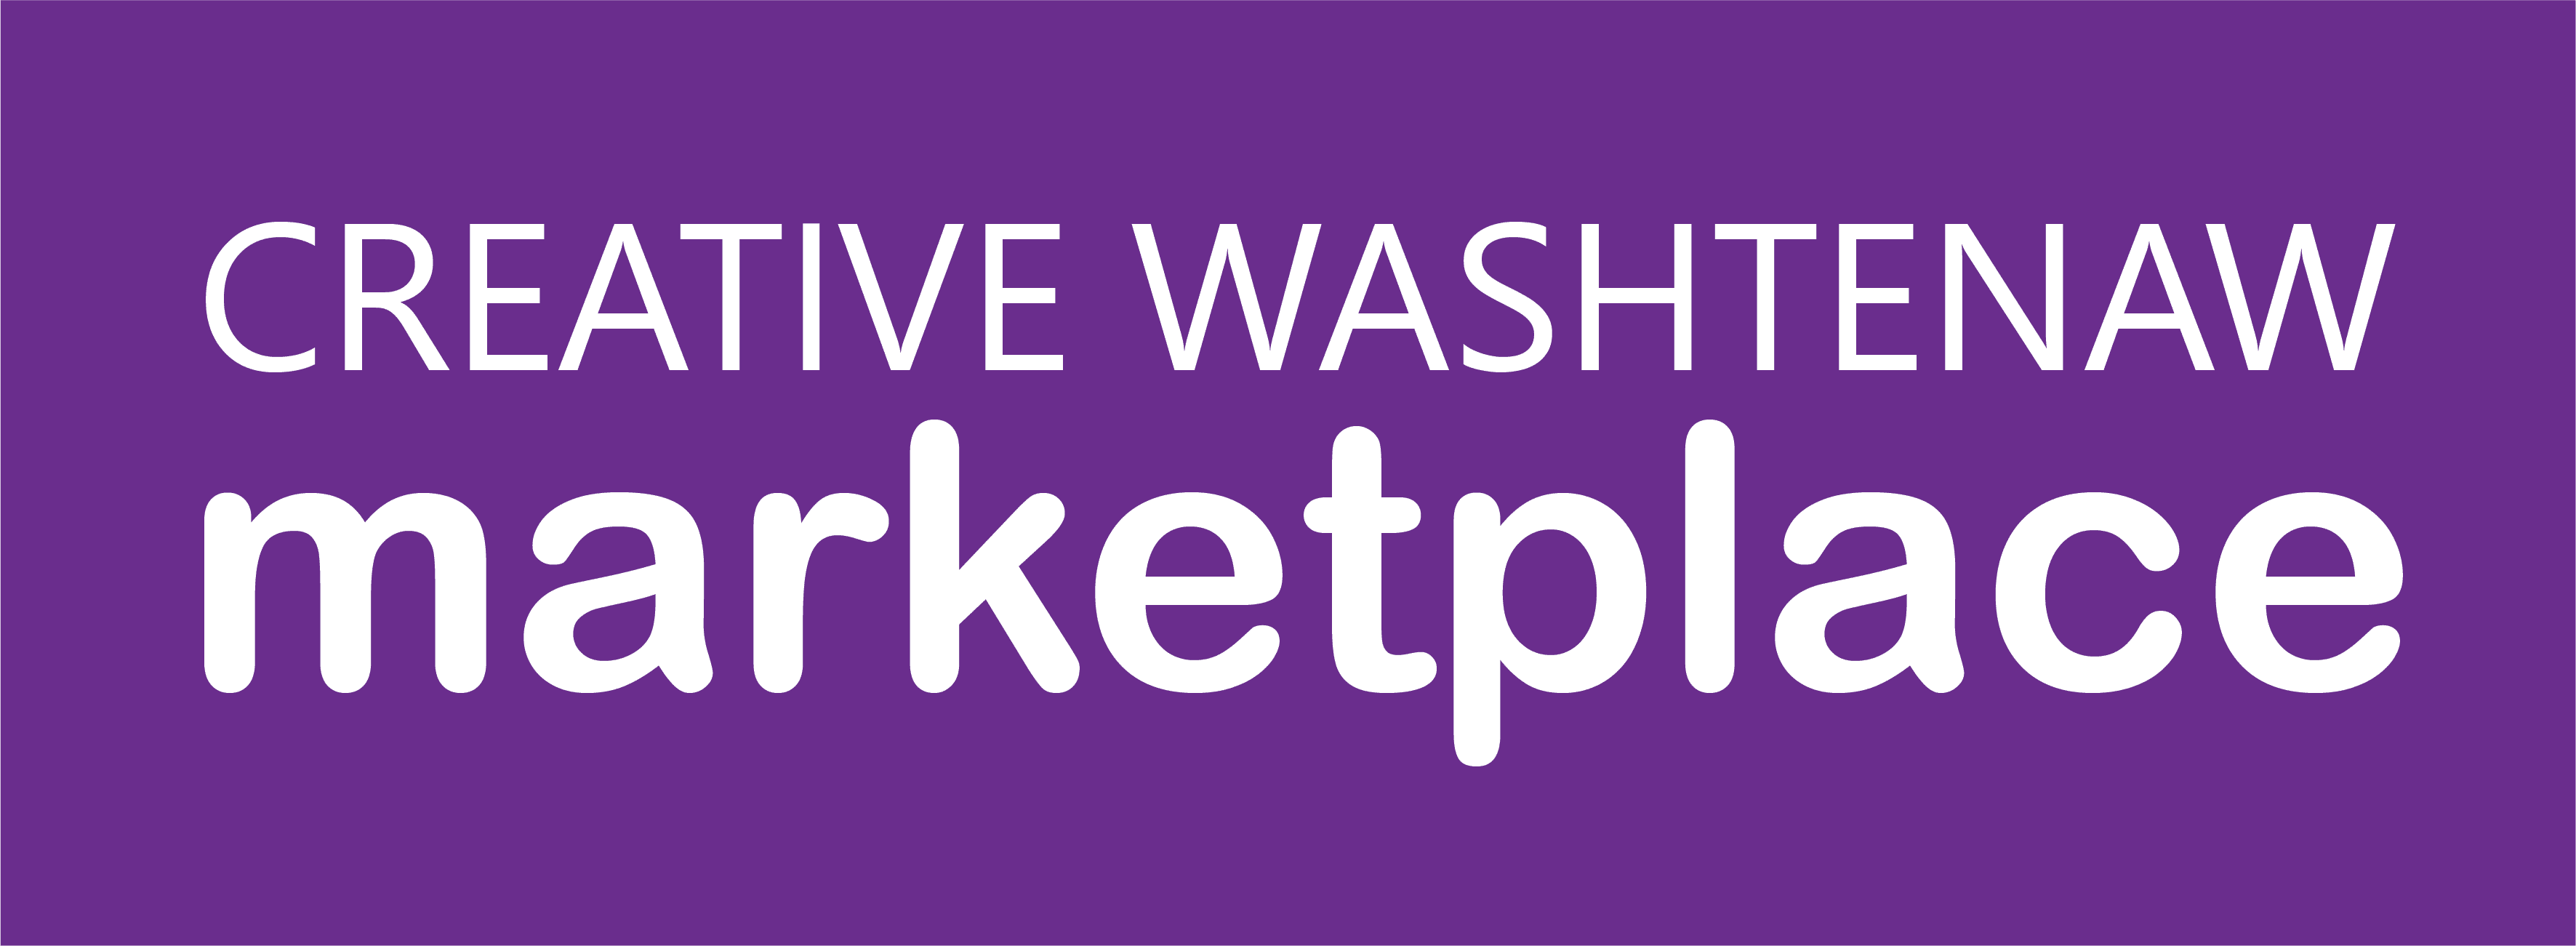 Creative Washtenaw Marketplace